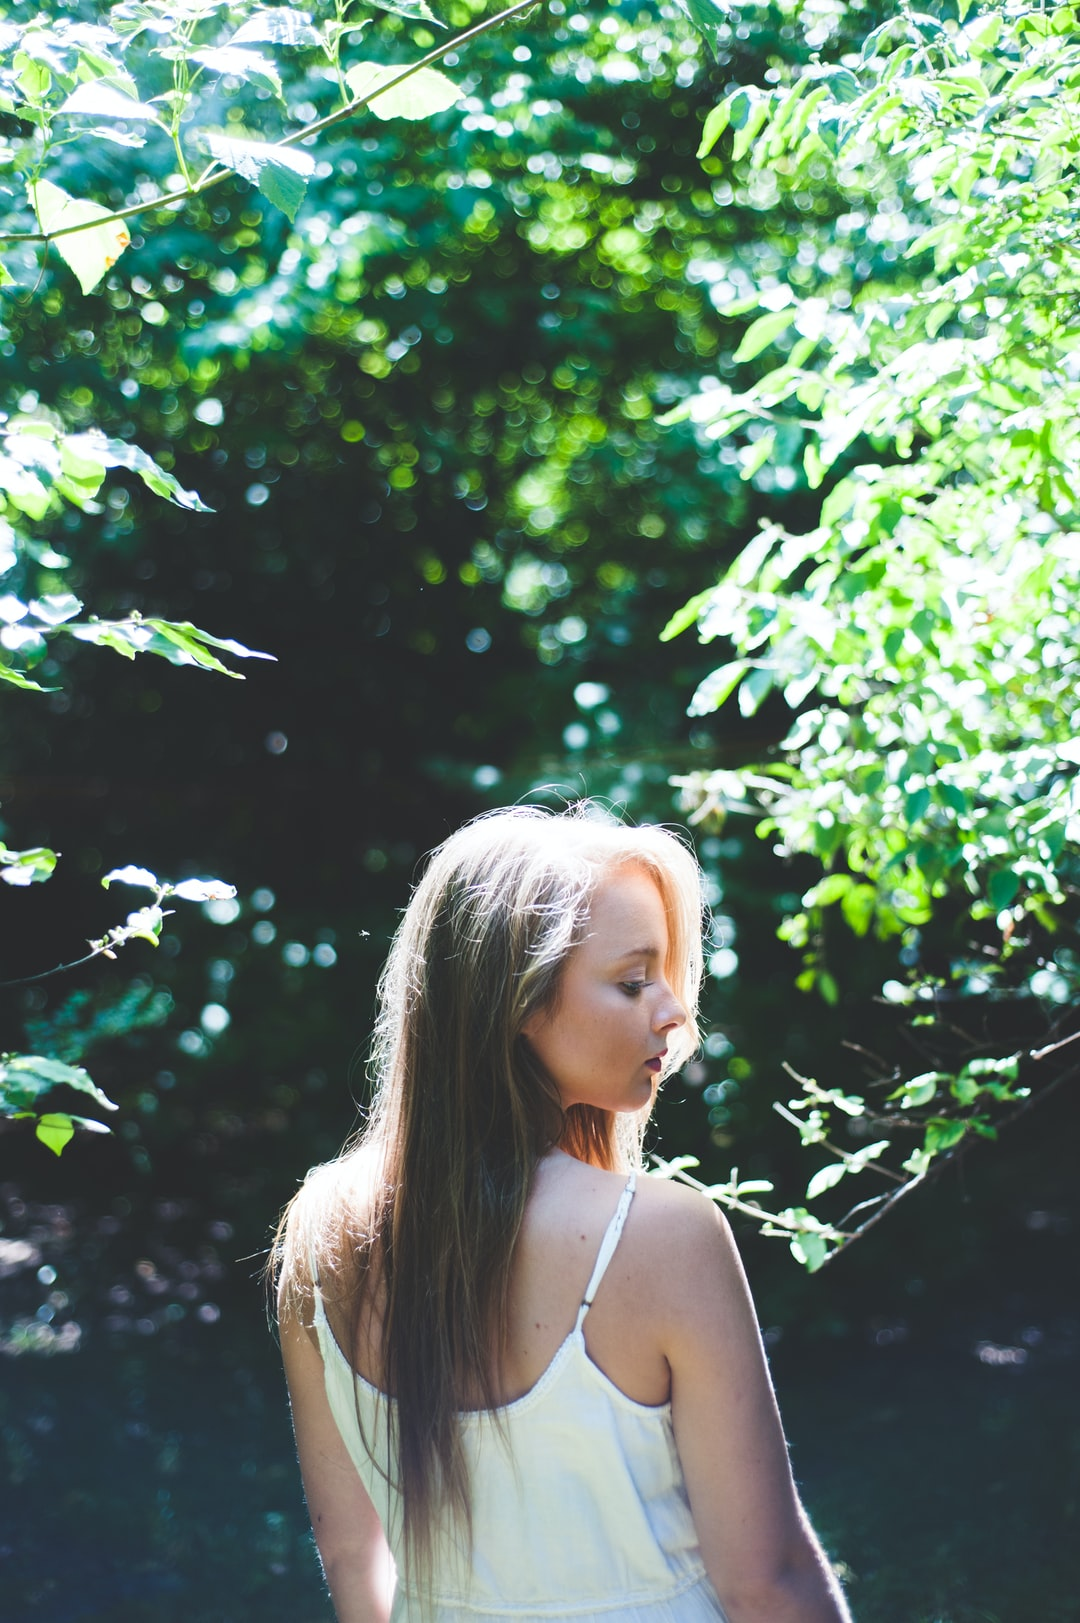 Girl Teen Teenager Transition Age 13 14 15 Years Brunette: Woman, Girl, Tree And Teen HD Photo By Ryann Flippo